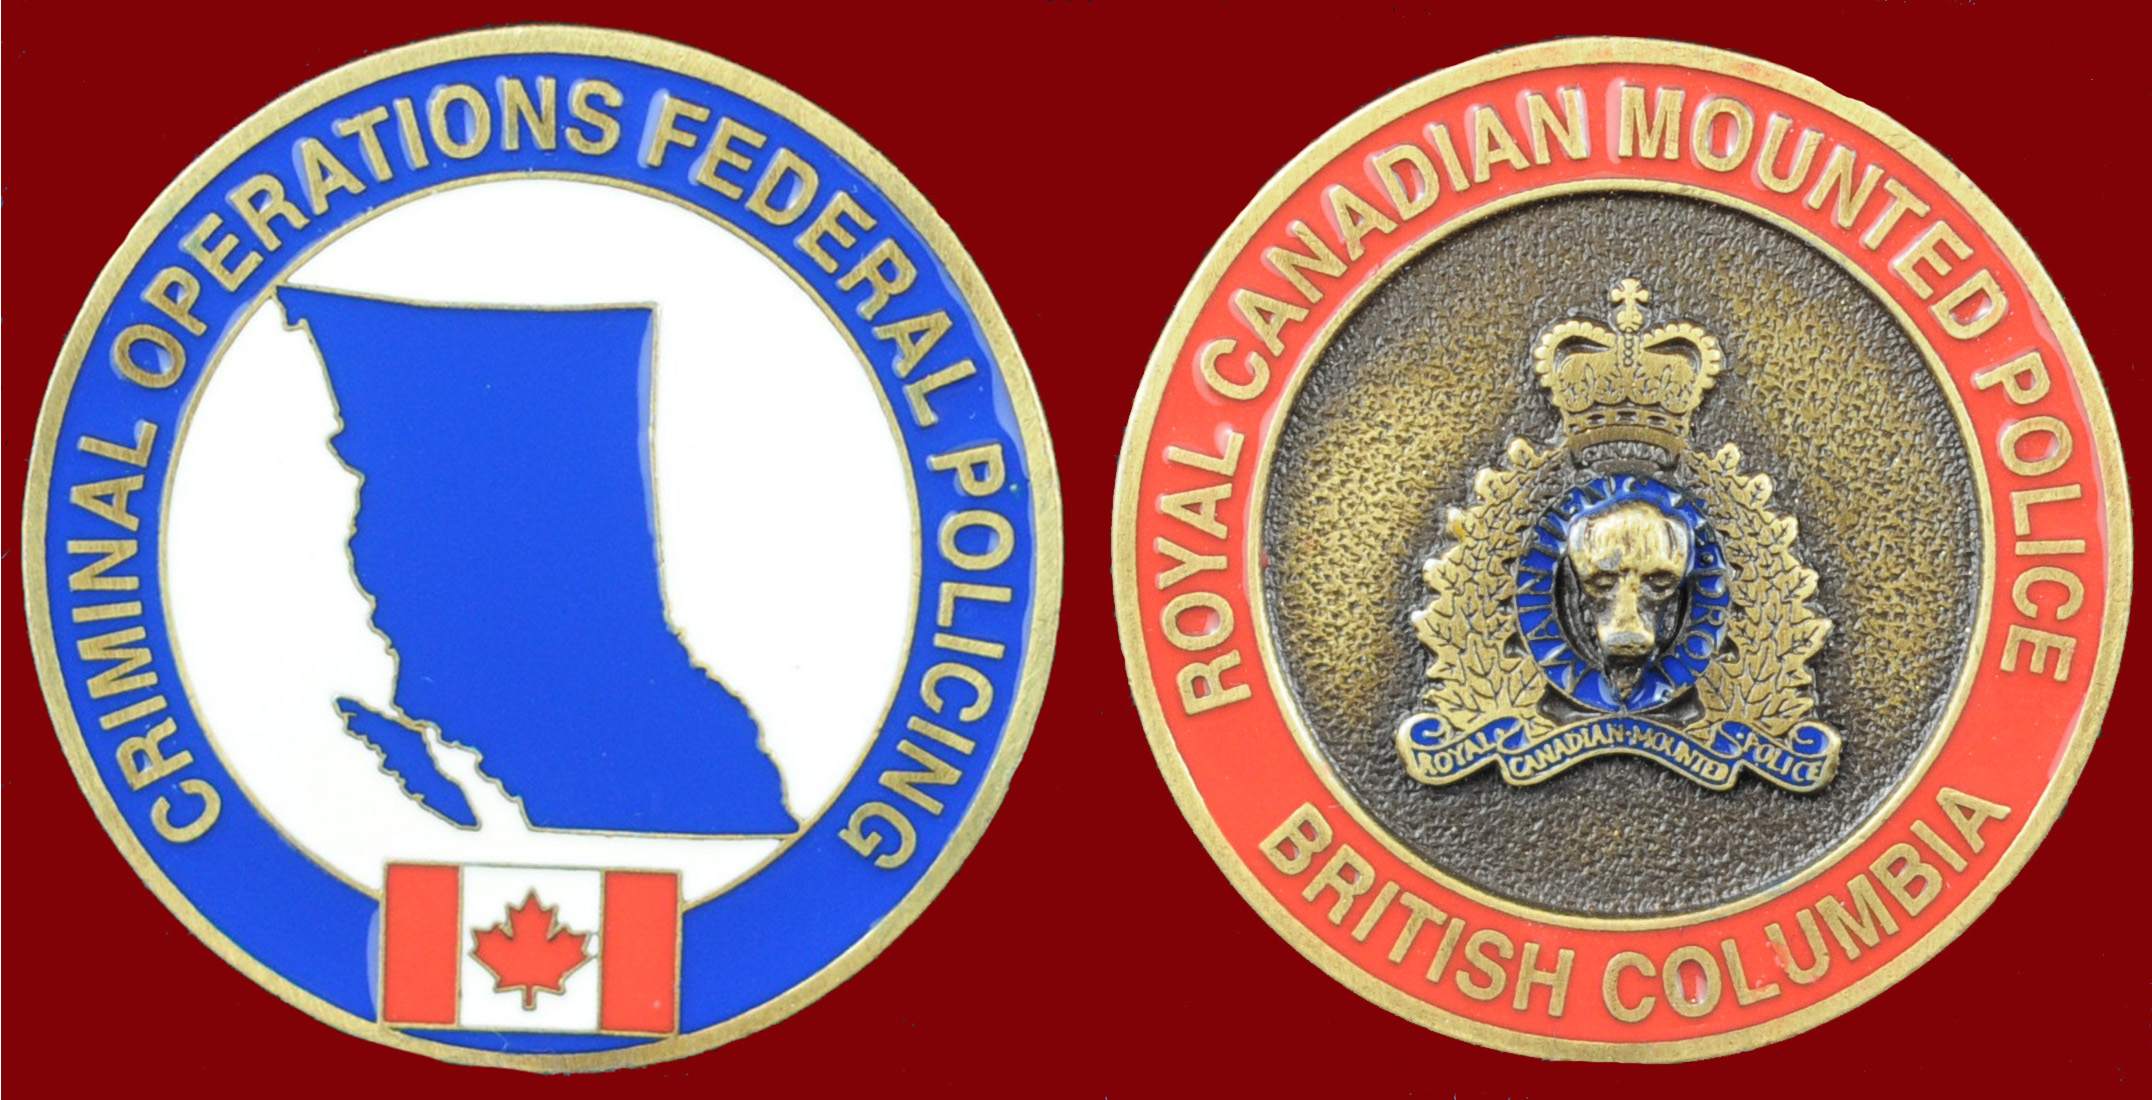 RCMP FEDERAL POLICING BRITISH COLUMBIA